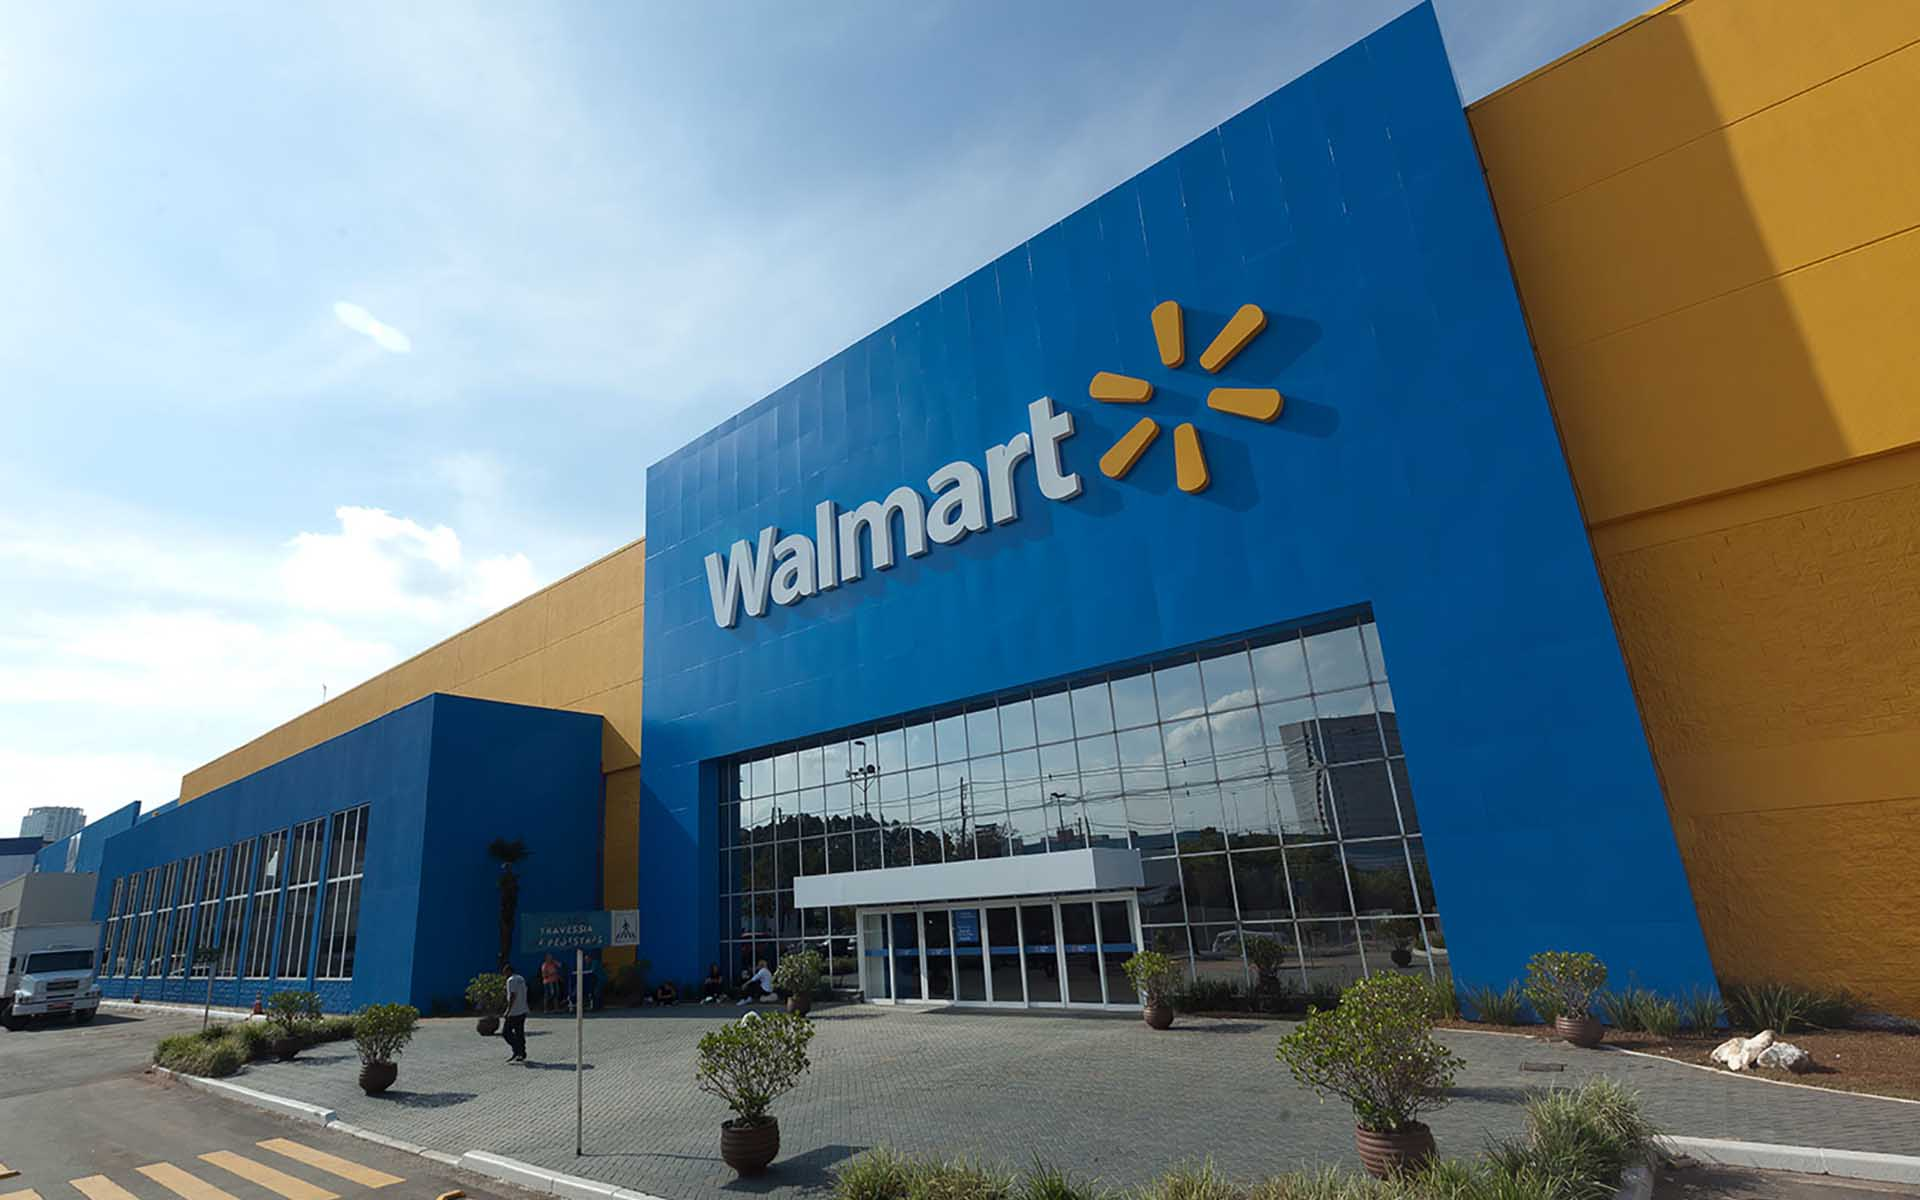 Walmart Awarded Patent for Blockchain Based Energy Management